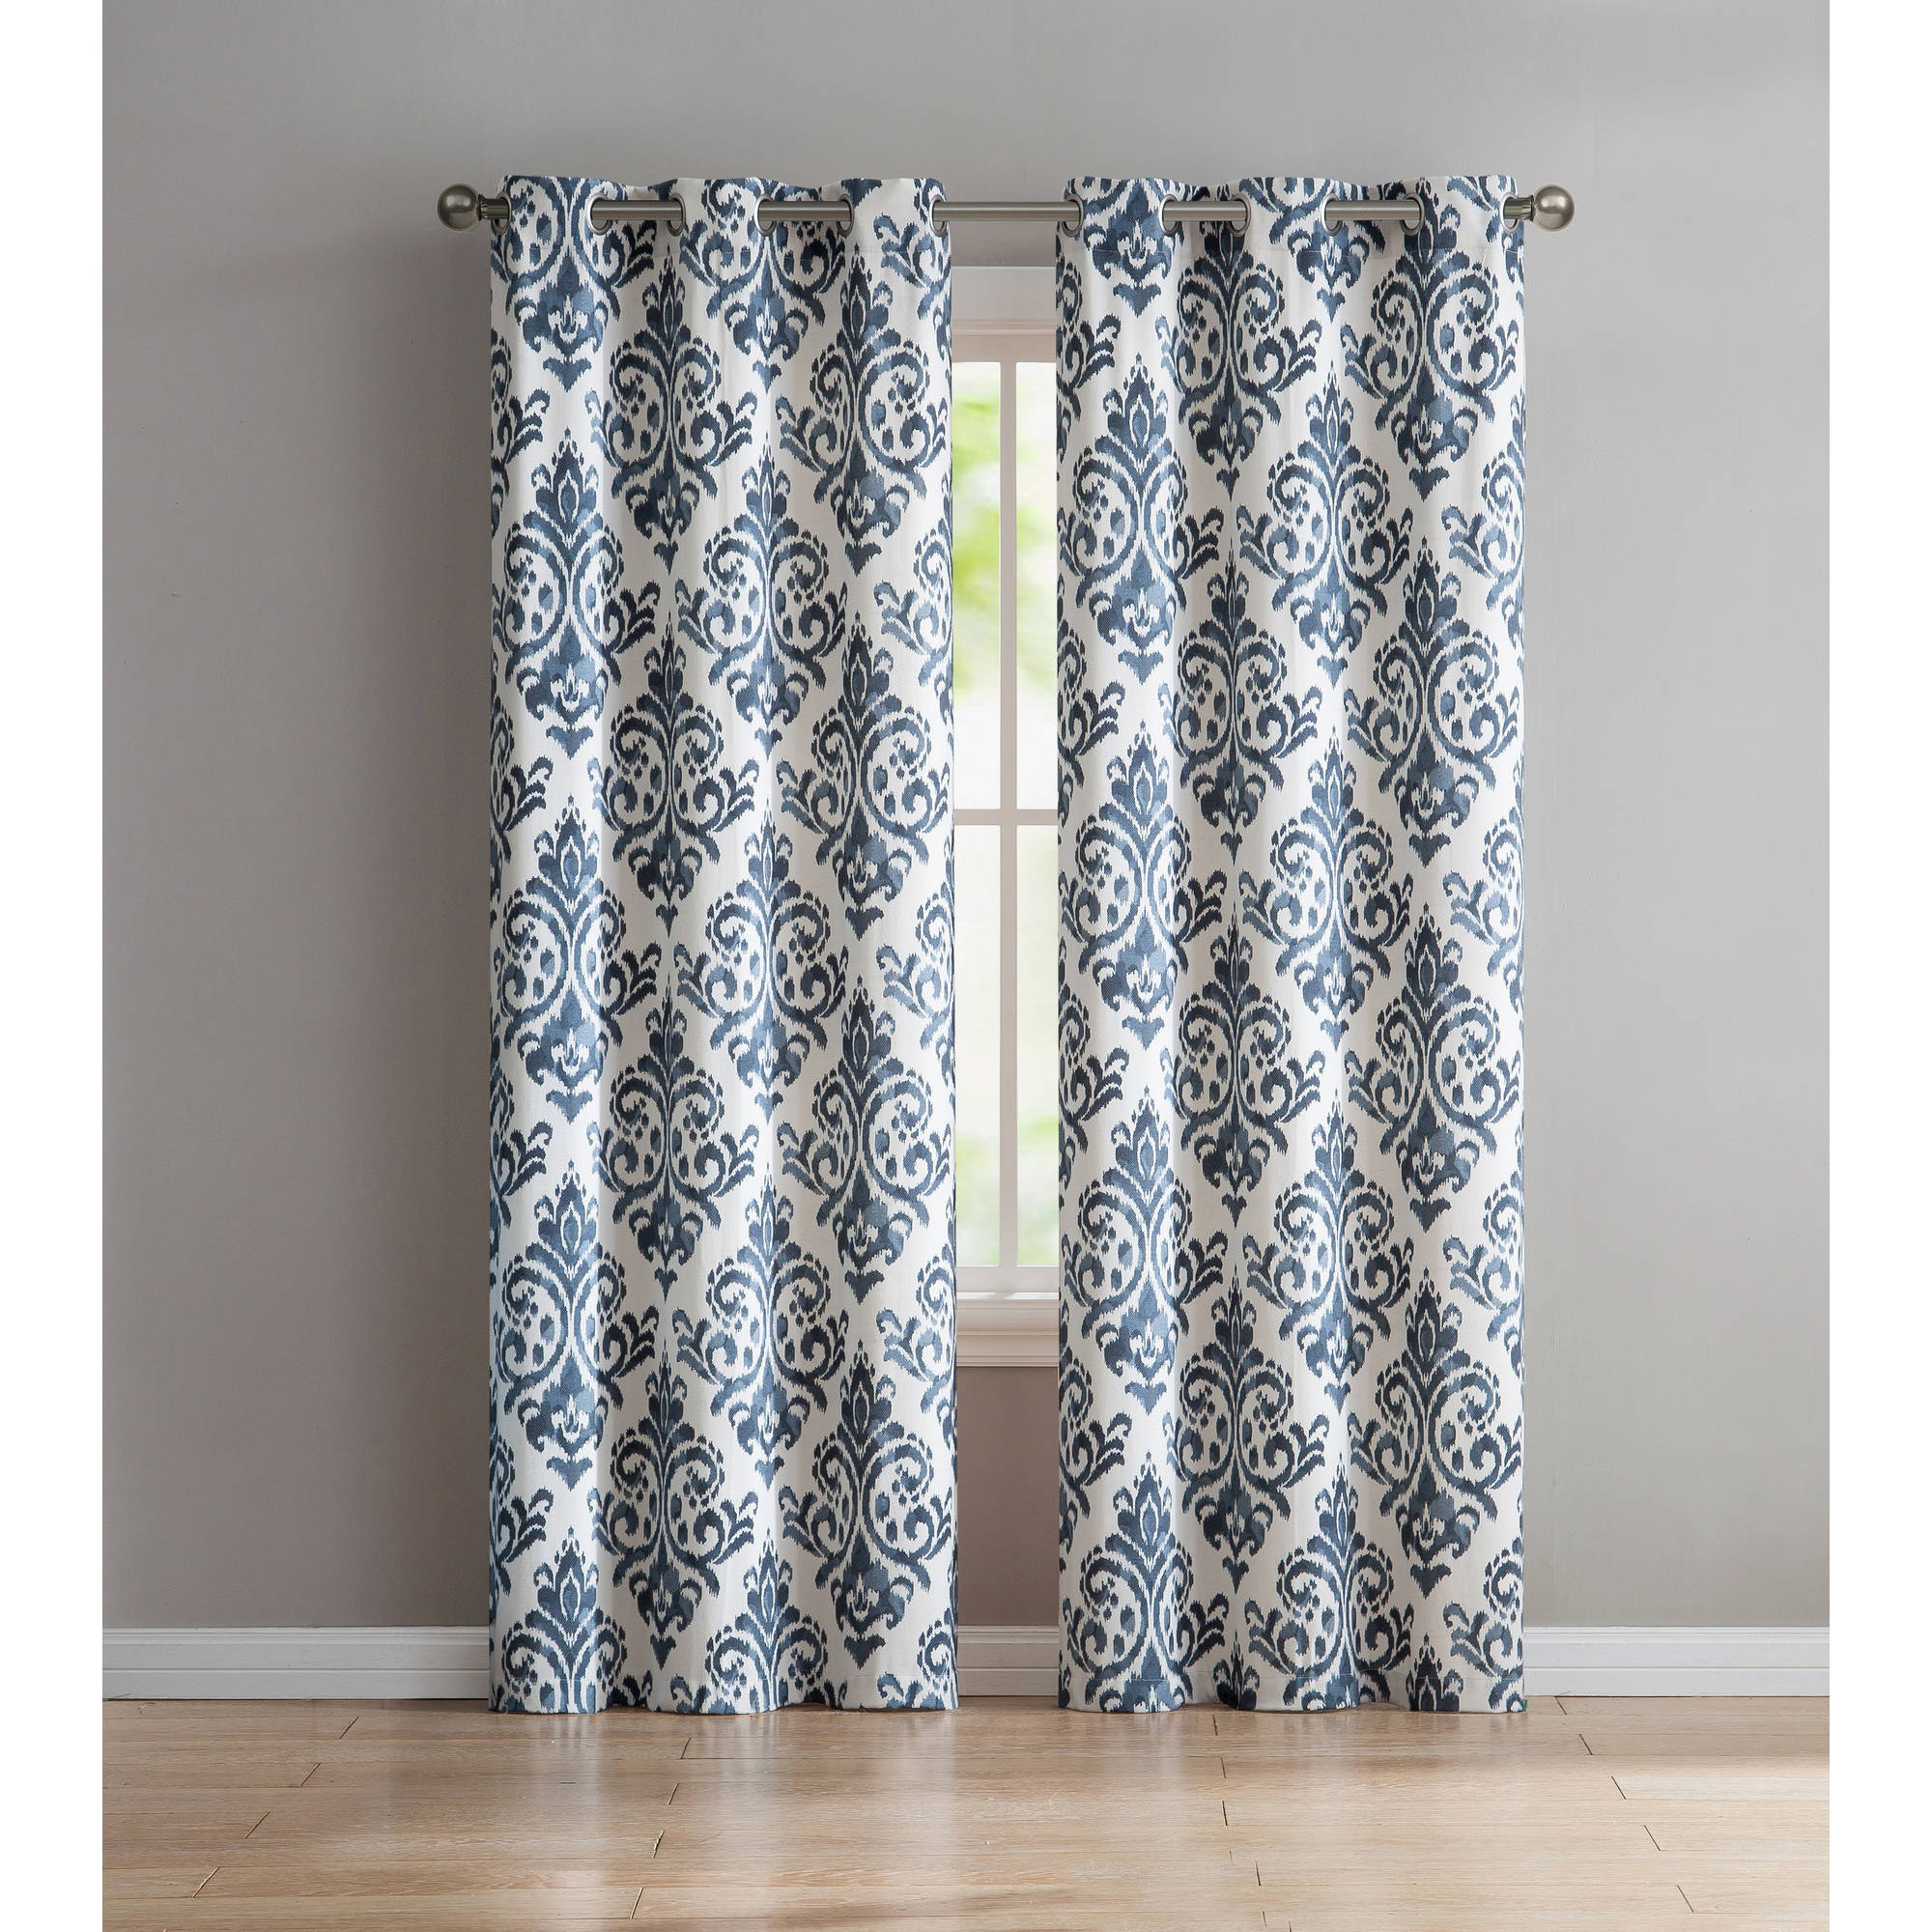 VCNY Home Alton Damask Grommet Top Window Curtain Panel, Set of 2, Multiple Sizes Available